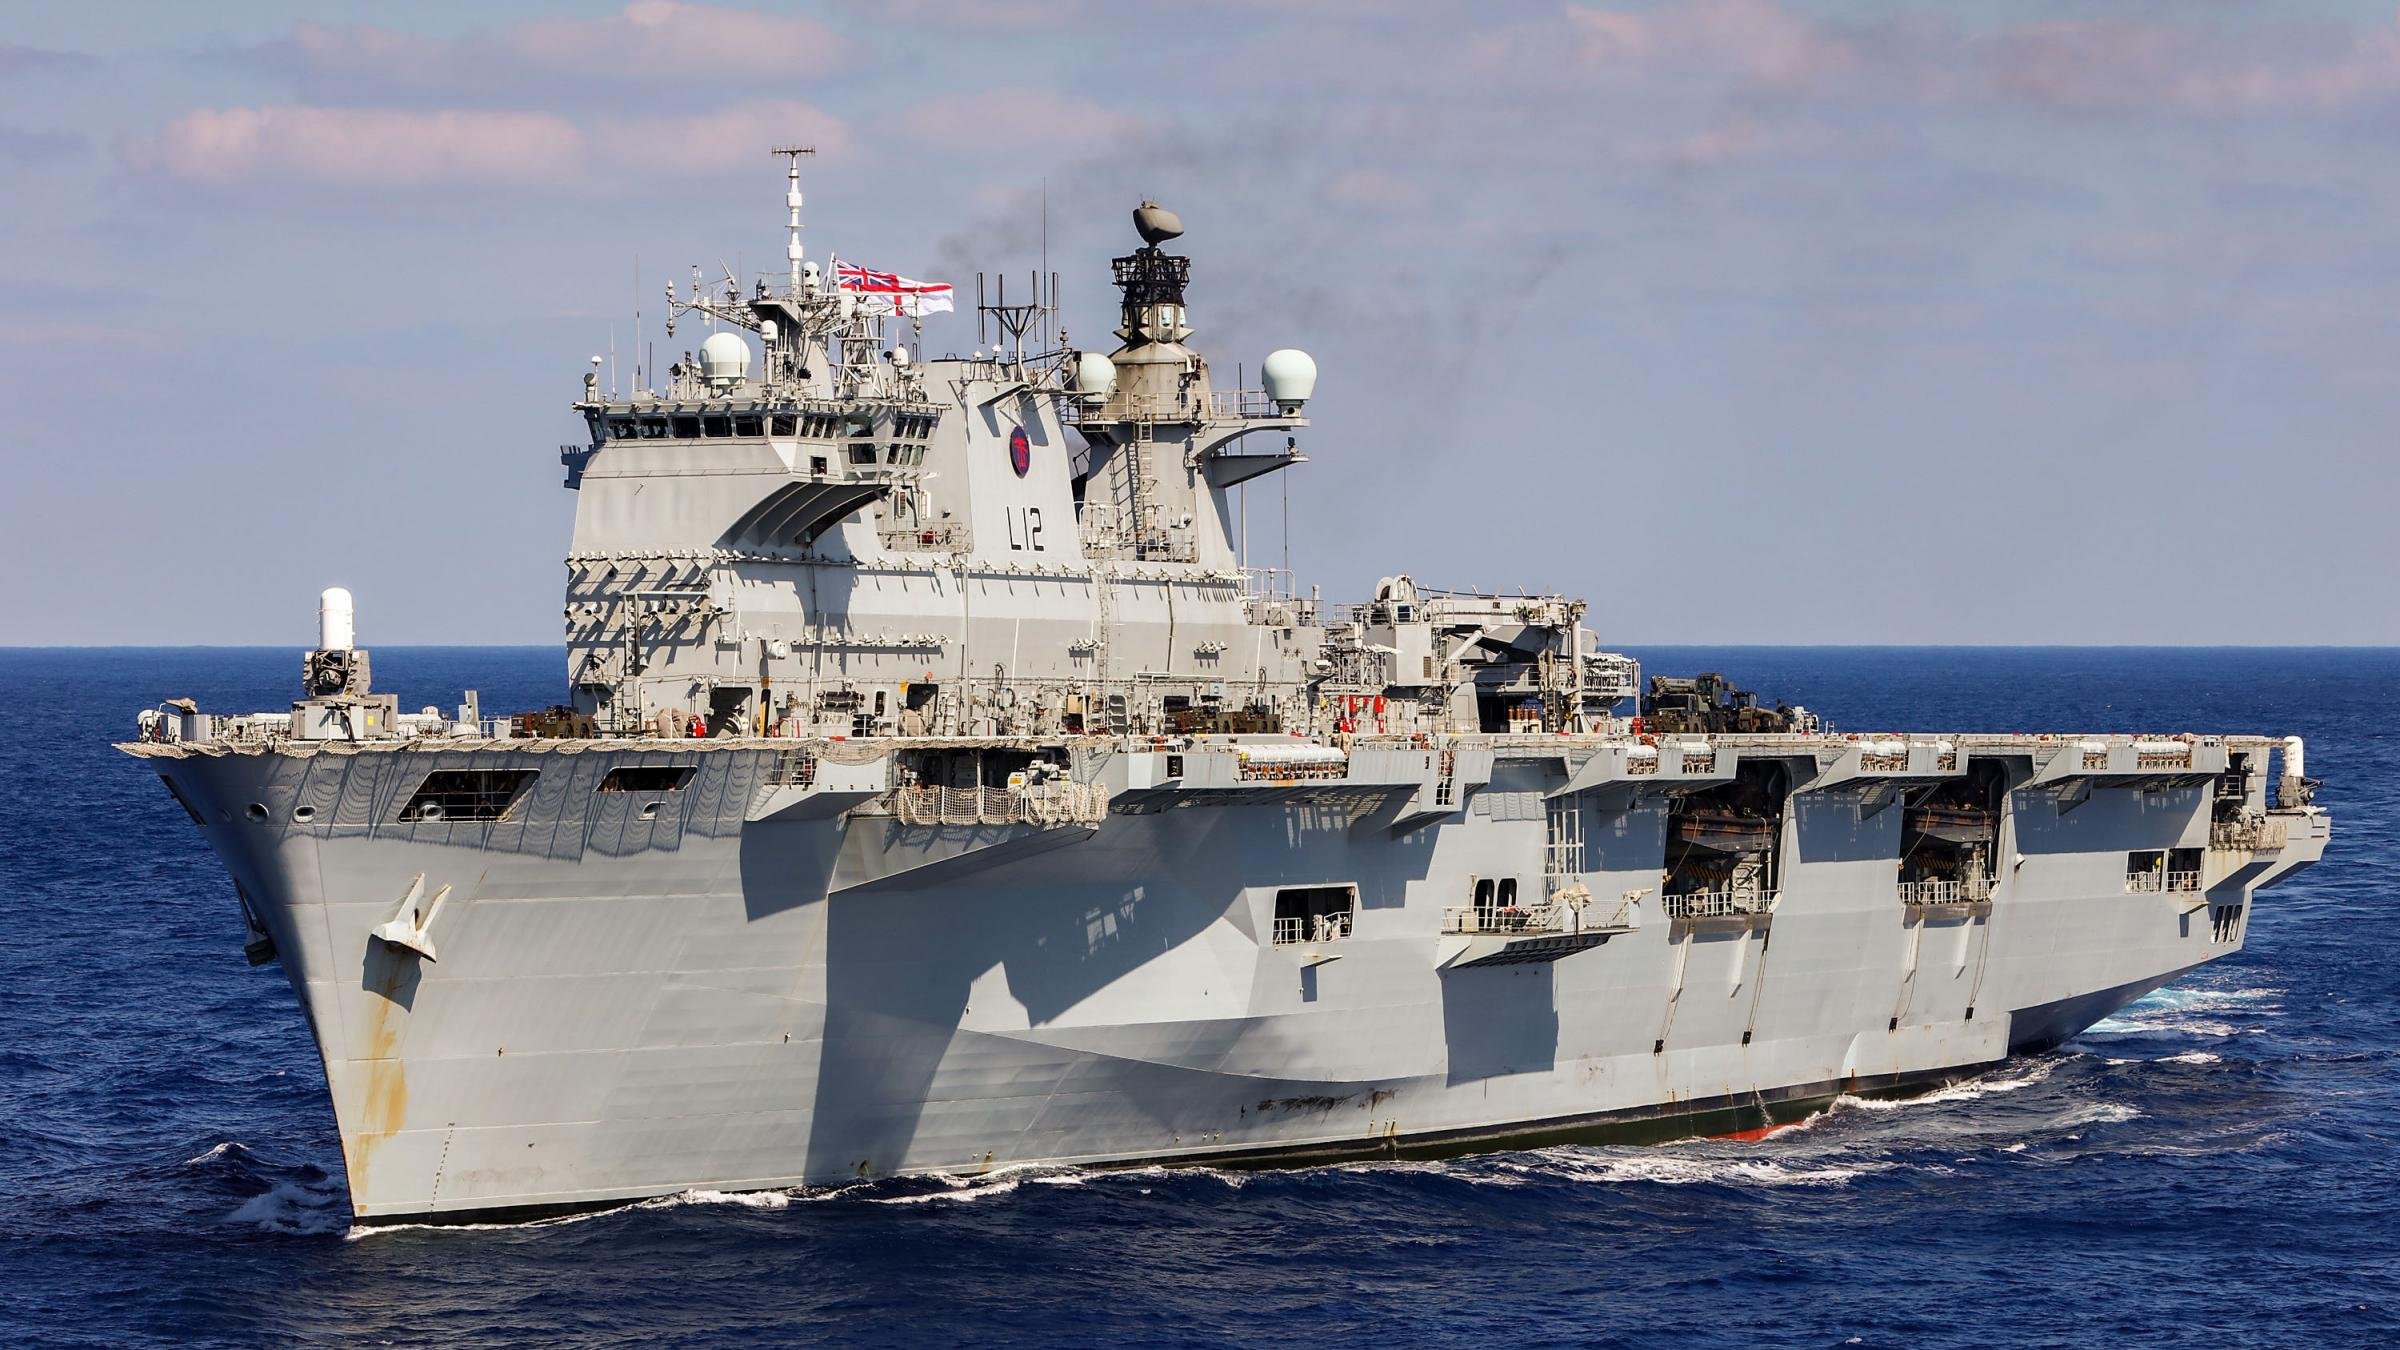 Navy's flagship HMS Ocean sold to Brazil for £84 million